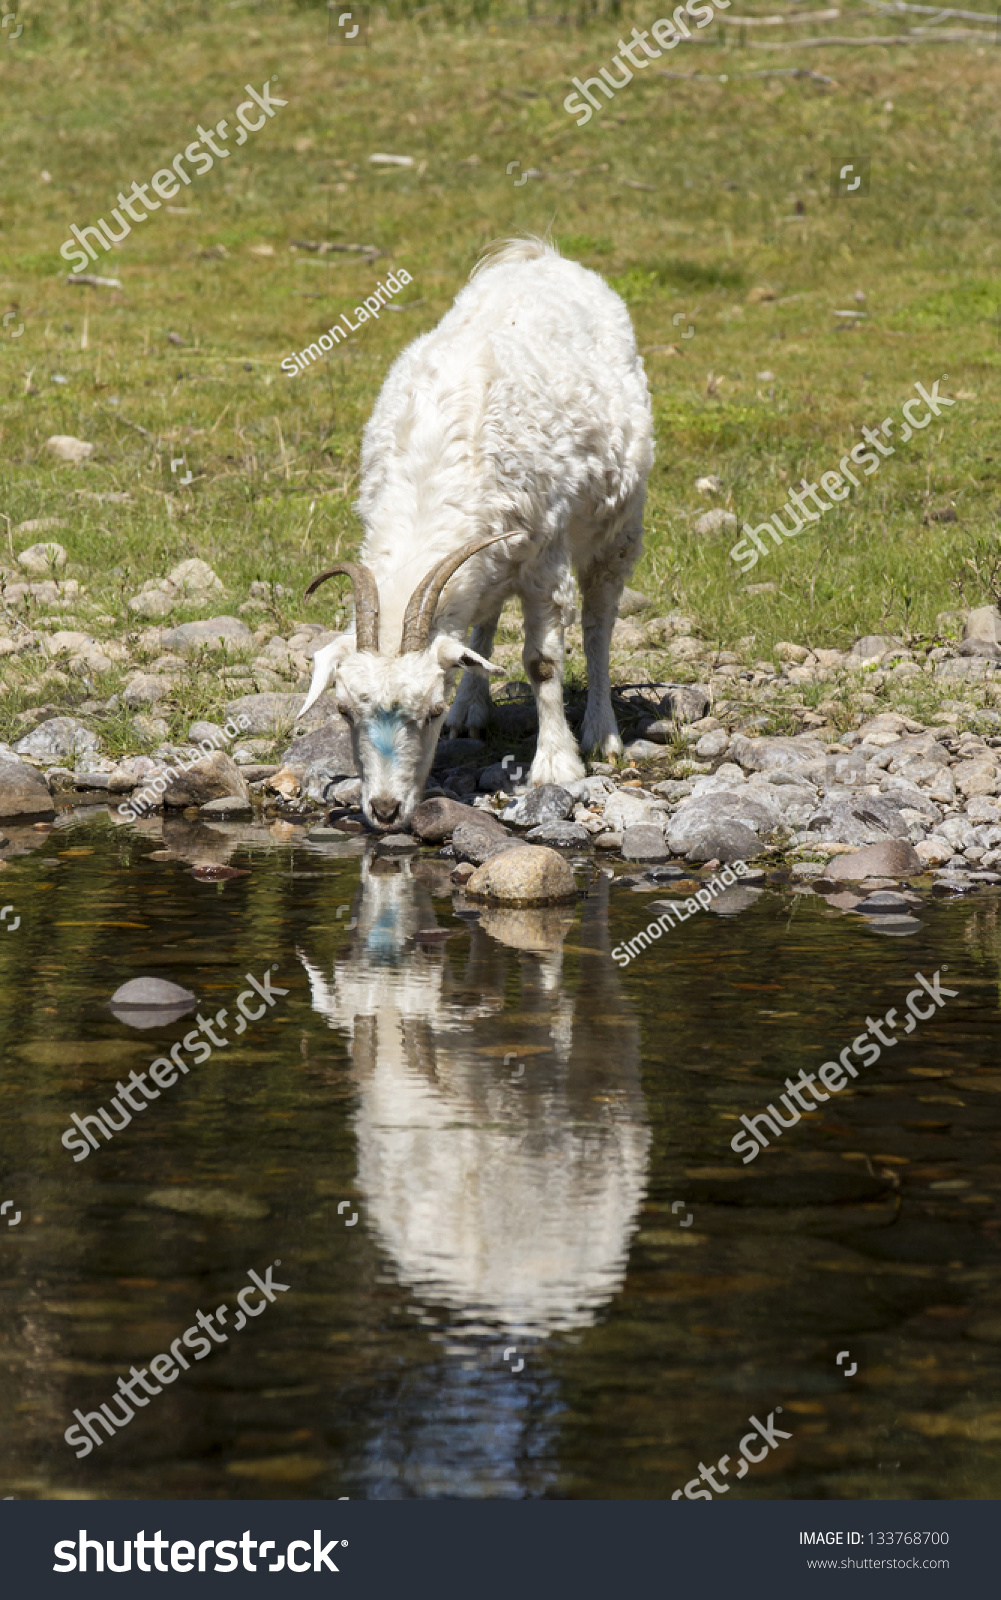 goat drinking water river reflection stock photo edit now